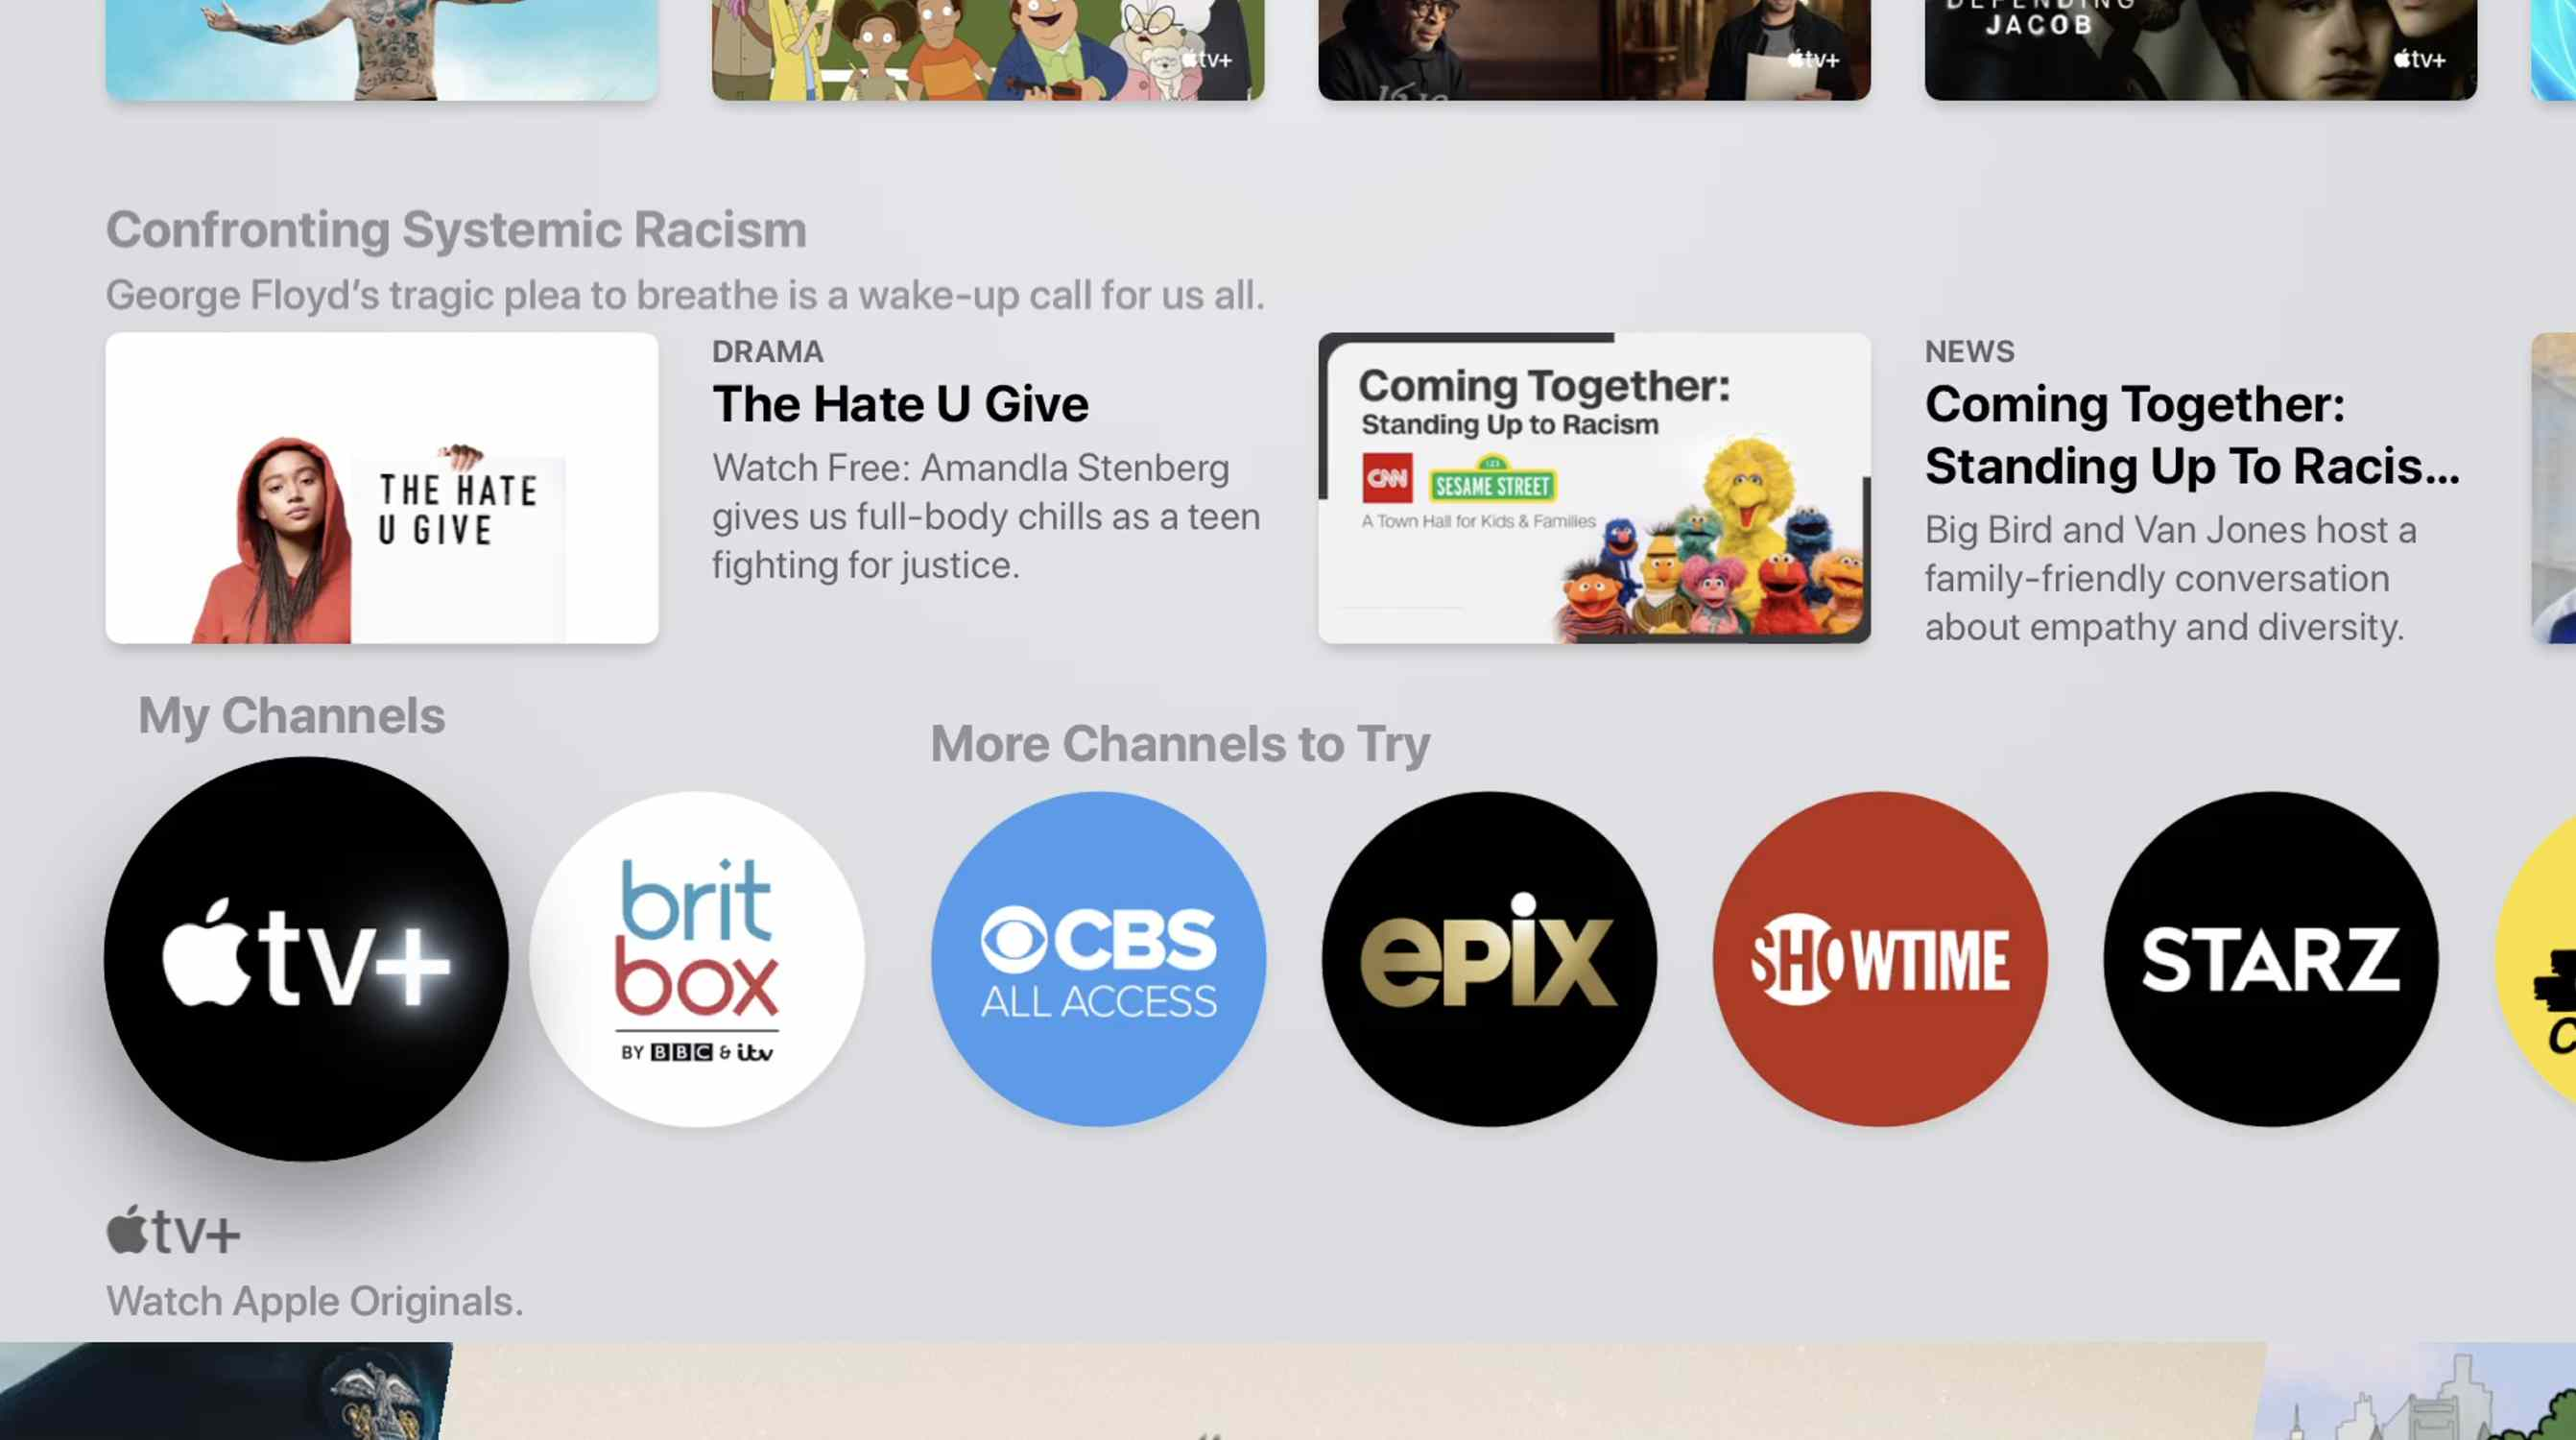 Screenshot of Apple TV+ in My Channels section